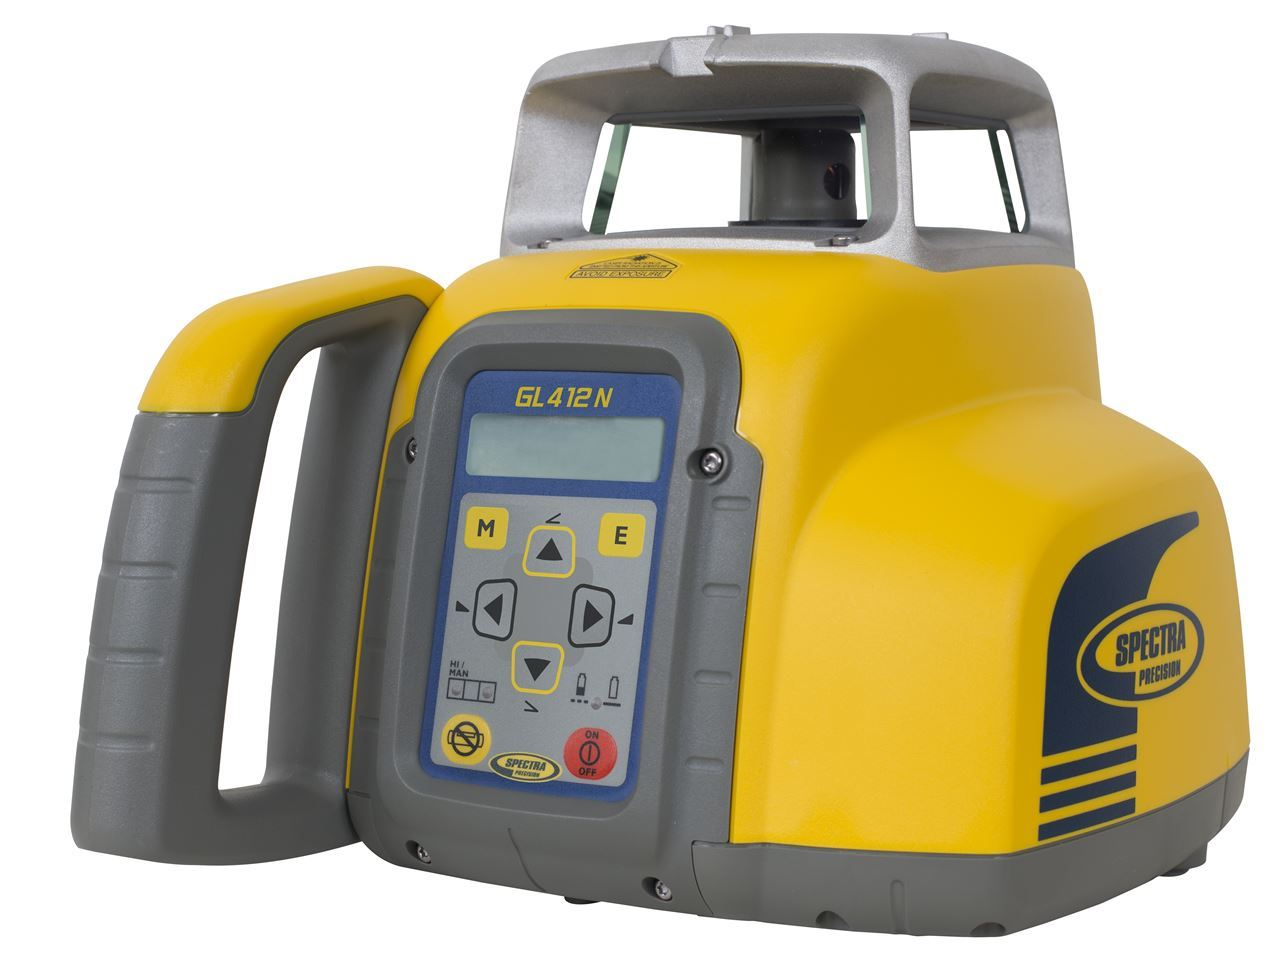 Picture of Spectra Precision GL412N Single Slope Grade Laser